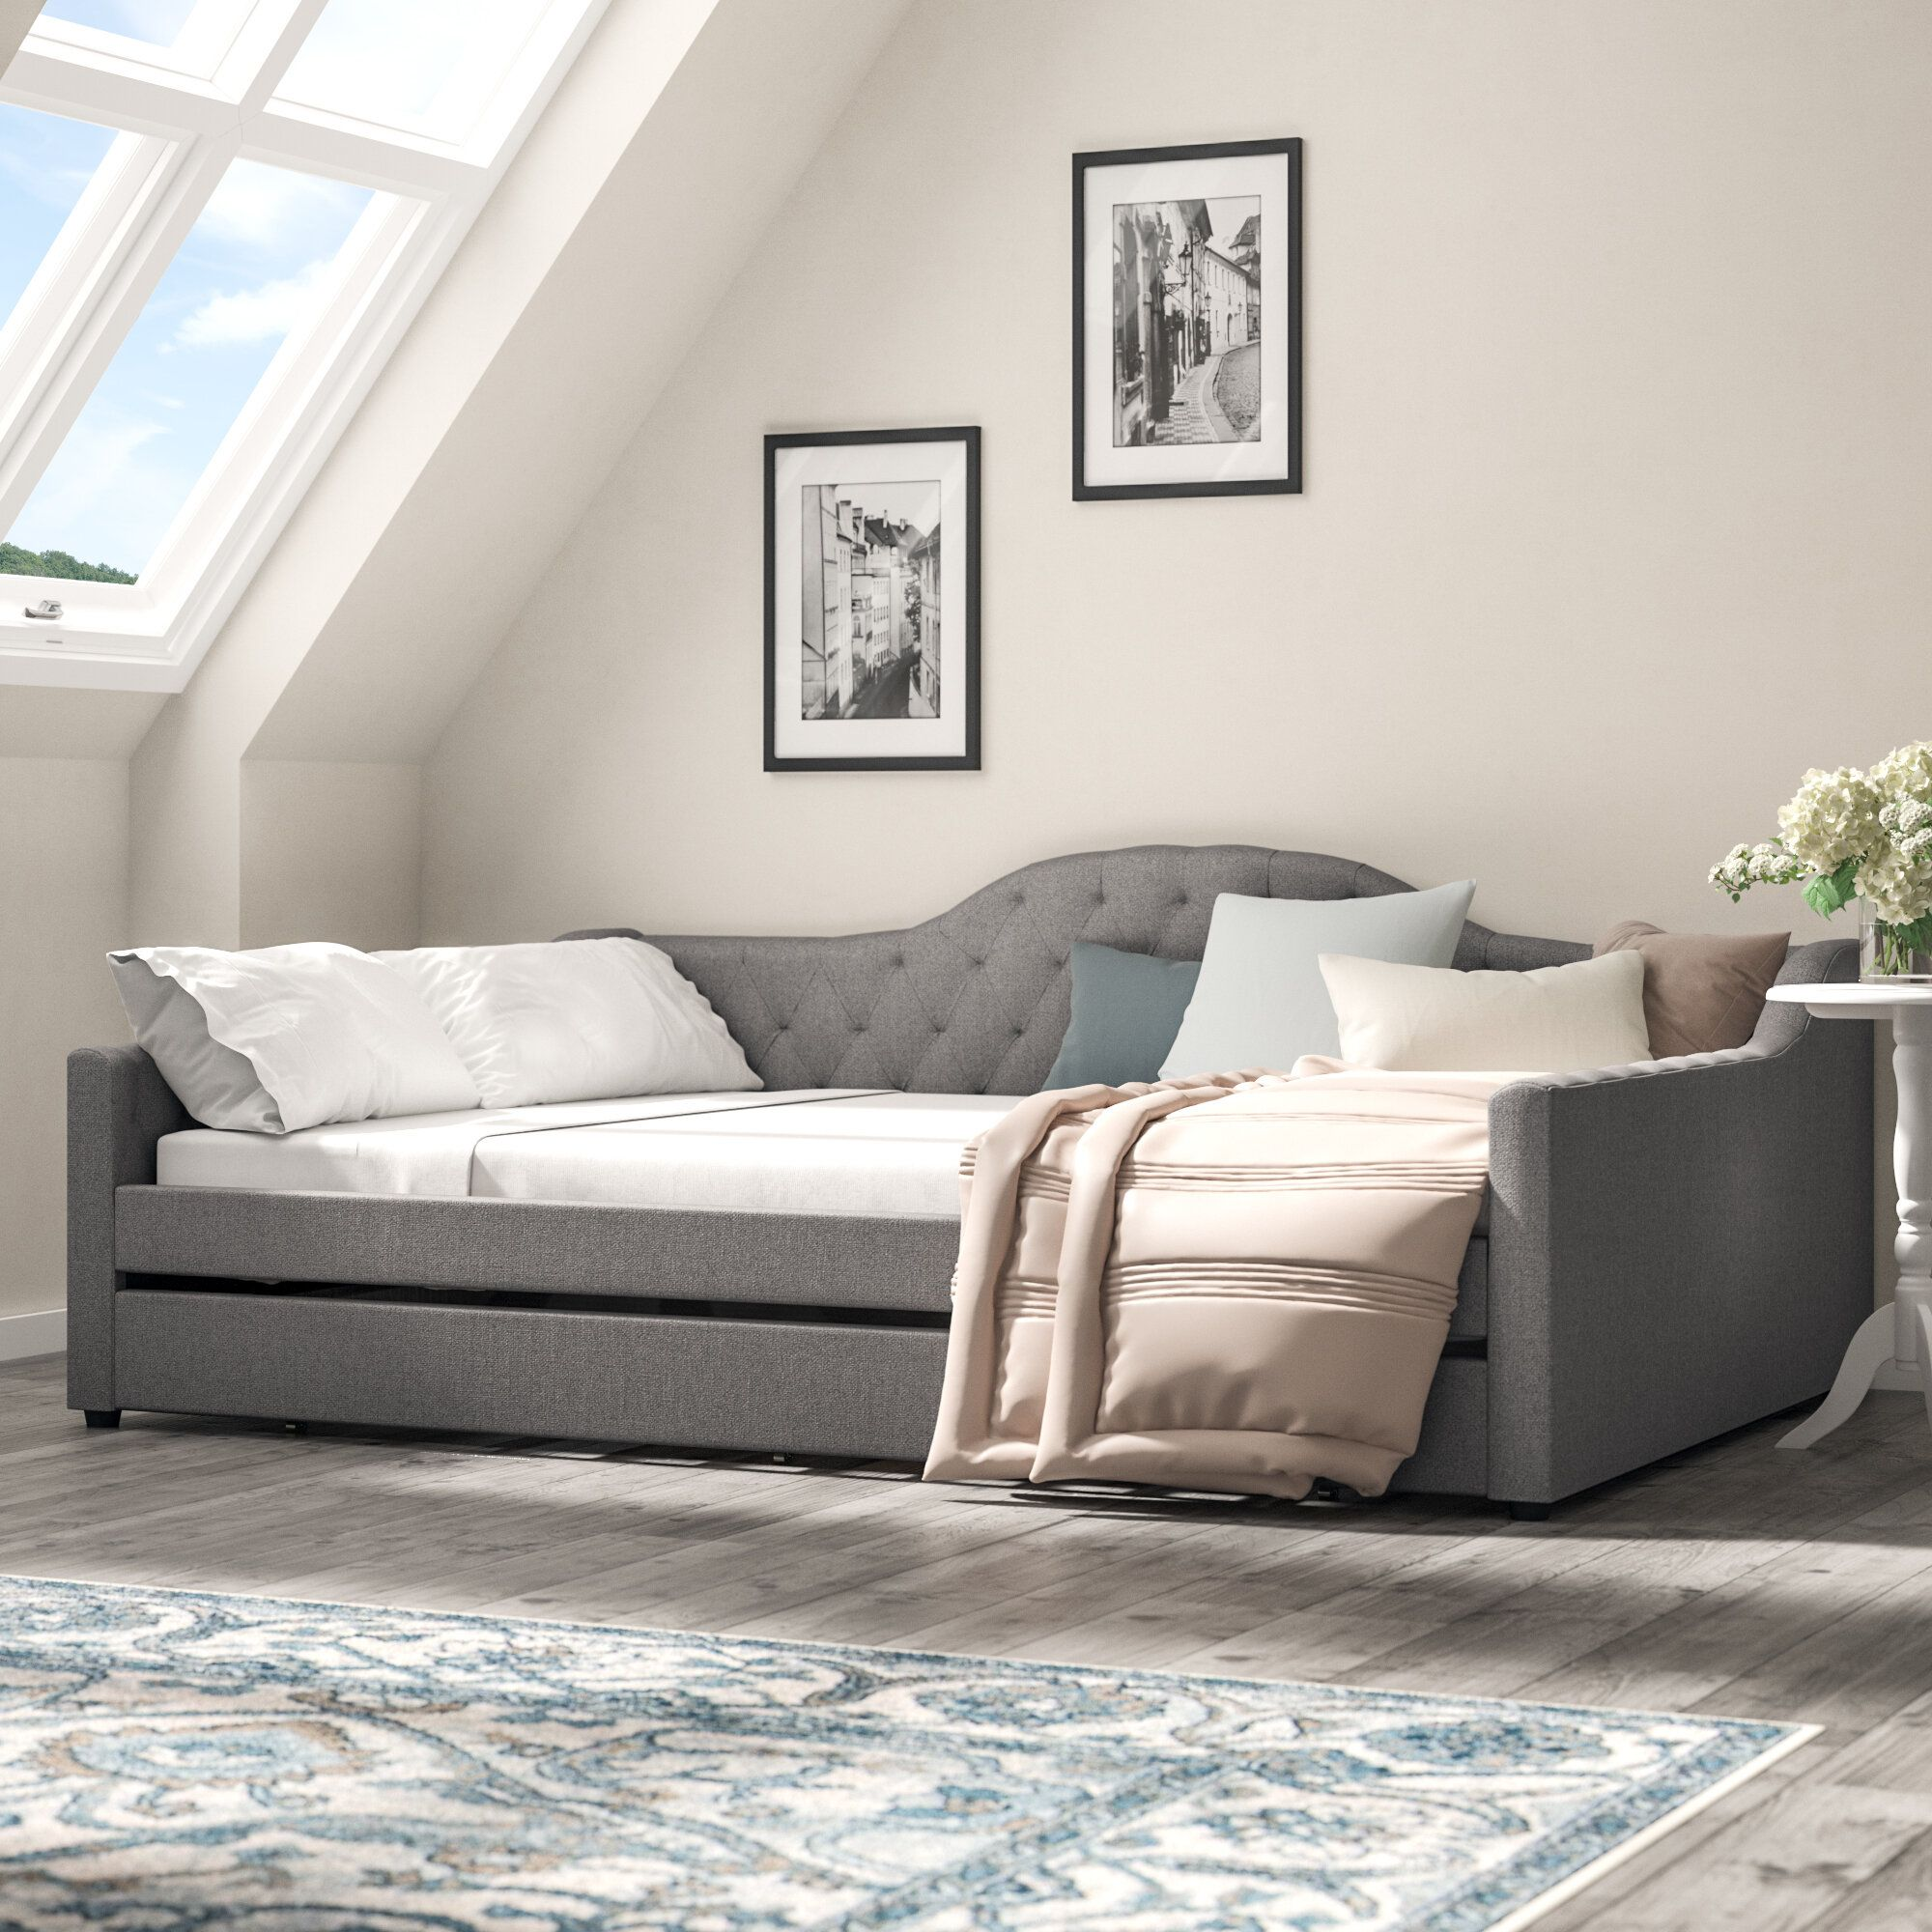 ZanowitZ Daybed (With images) Daybed with trundle, Twin